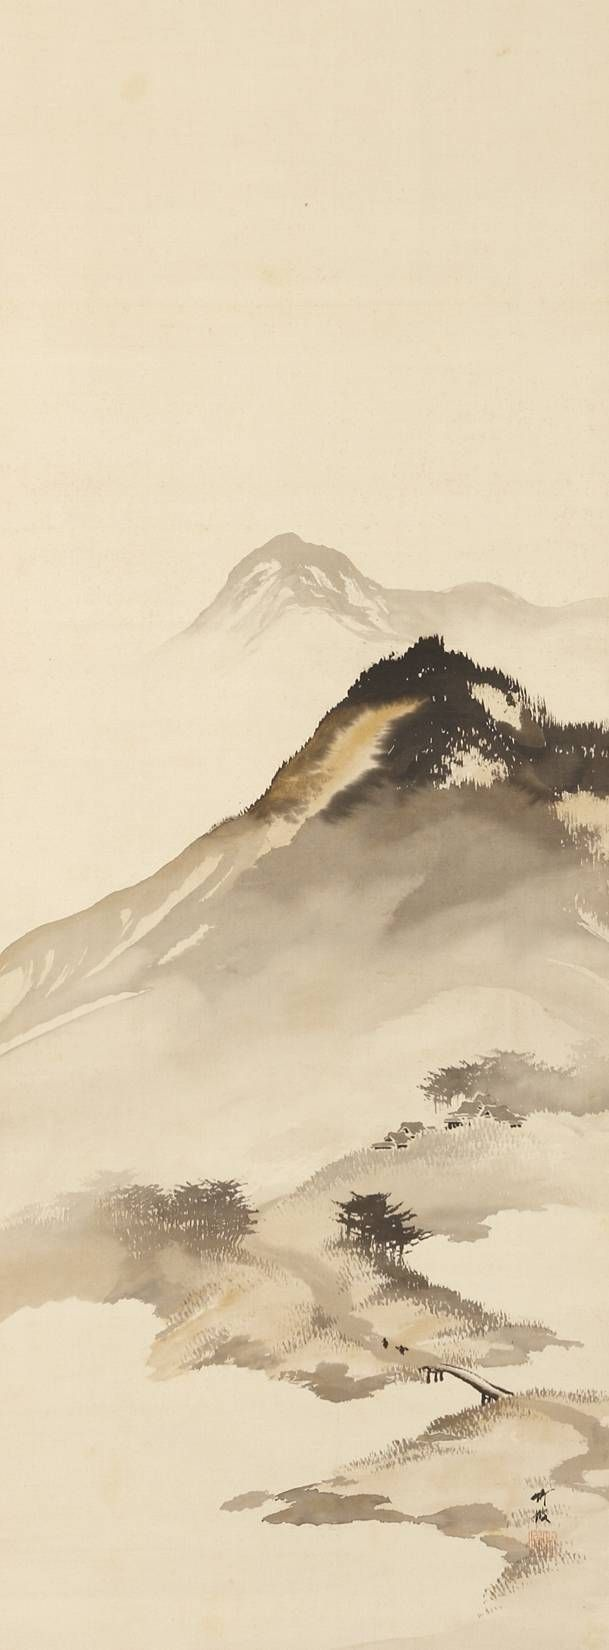 Mountain Landscape With Bridge By Odake Chikuha 1878 1936 尾竹竹